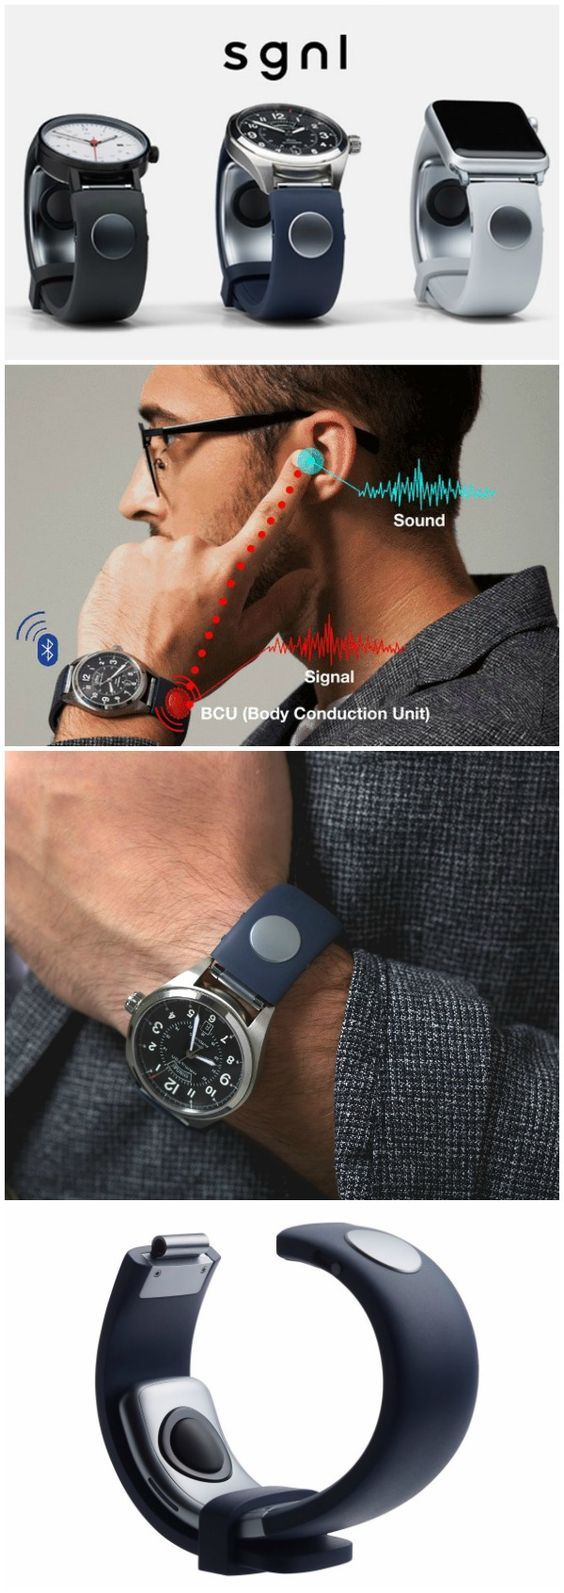 Sgnl is the smart strap that enables you to make calls by placing your…